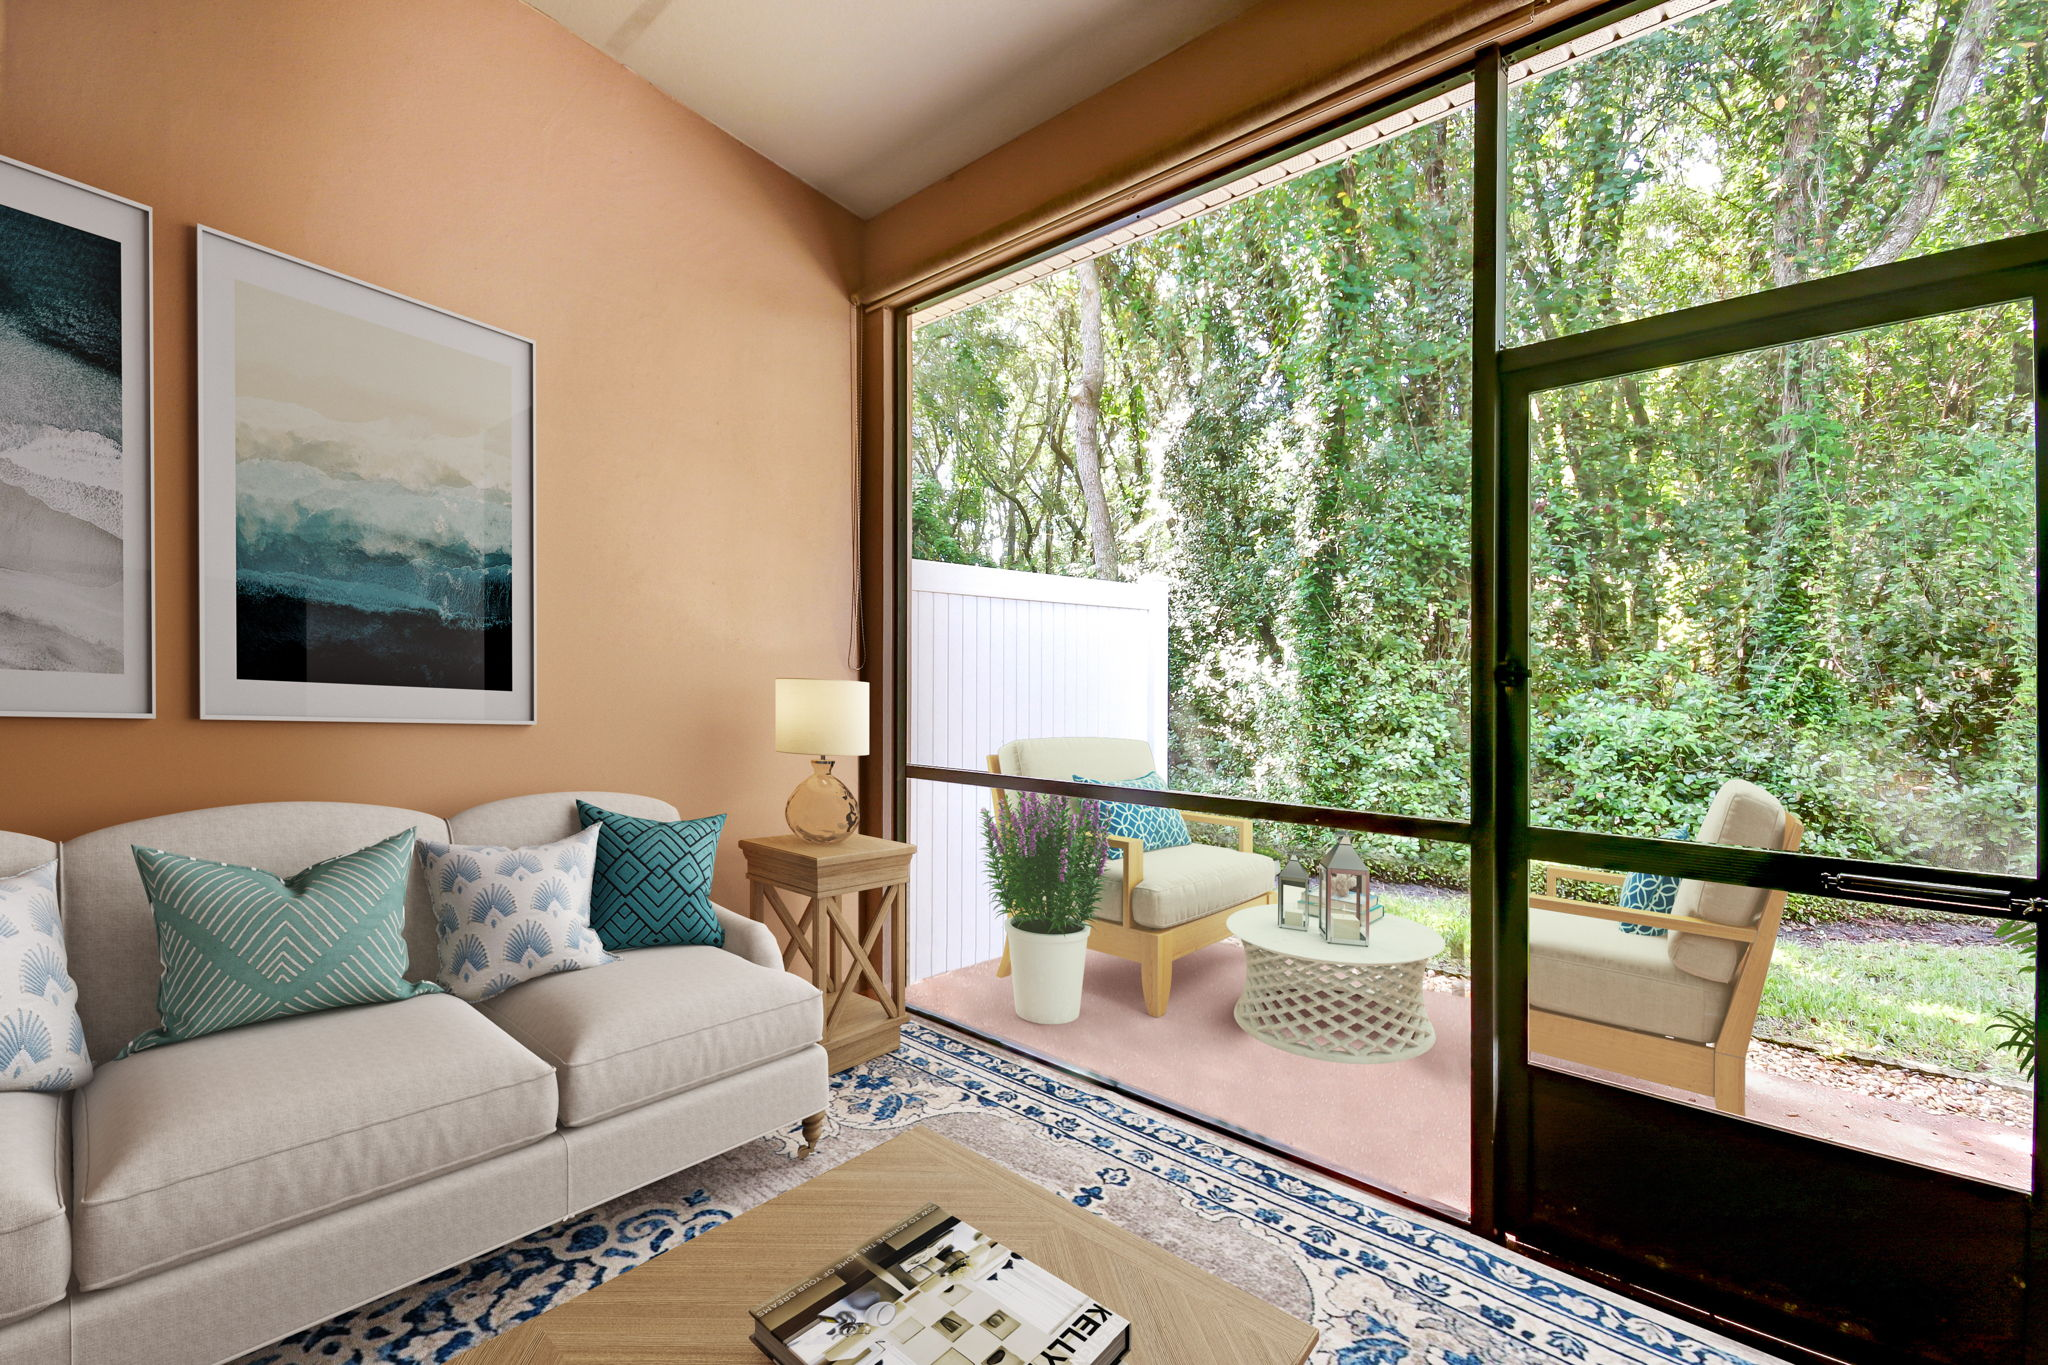 A screened lanai faces a delightful private wooded landscape